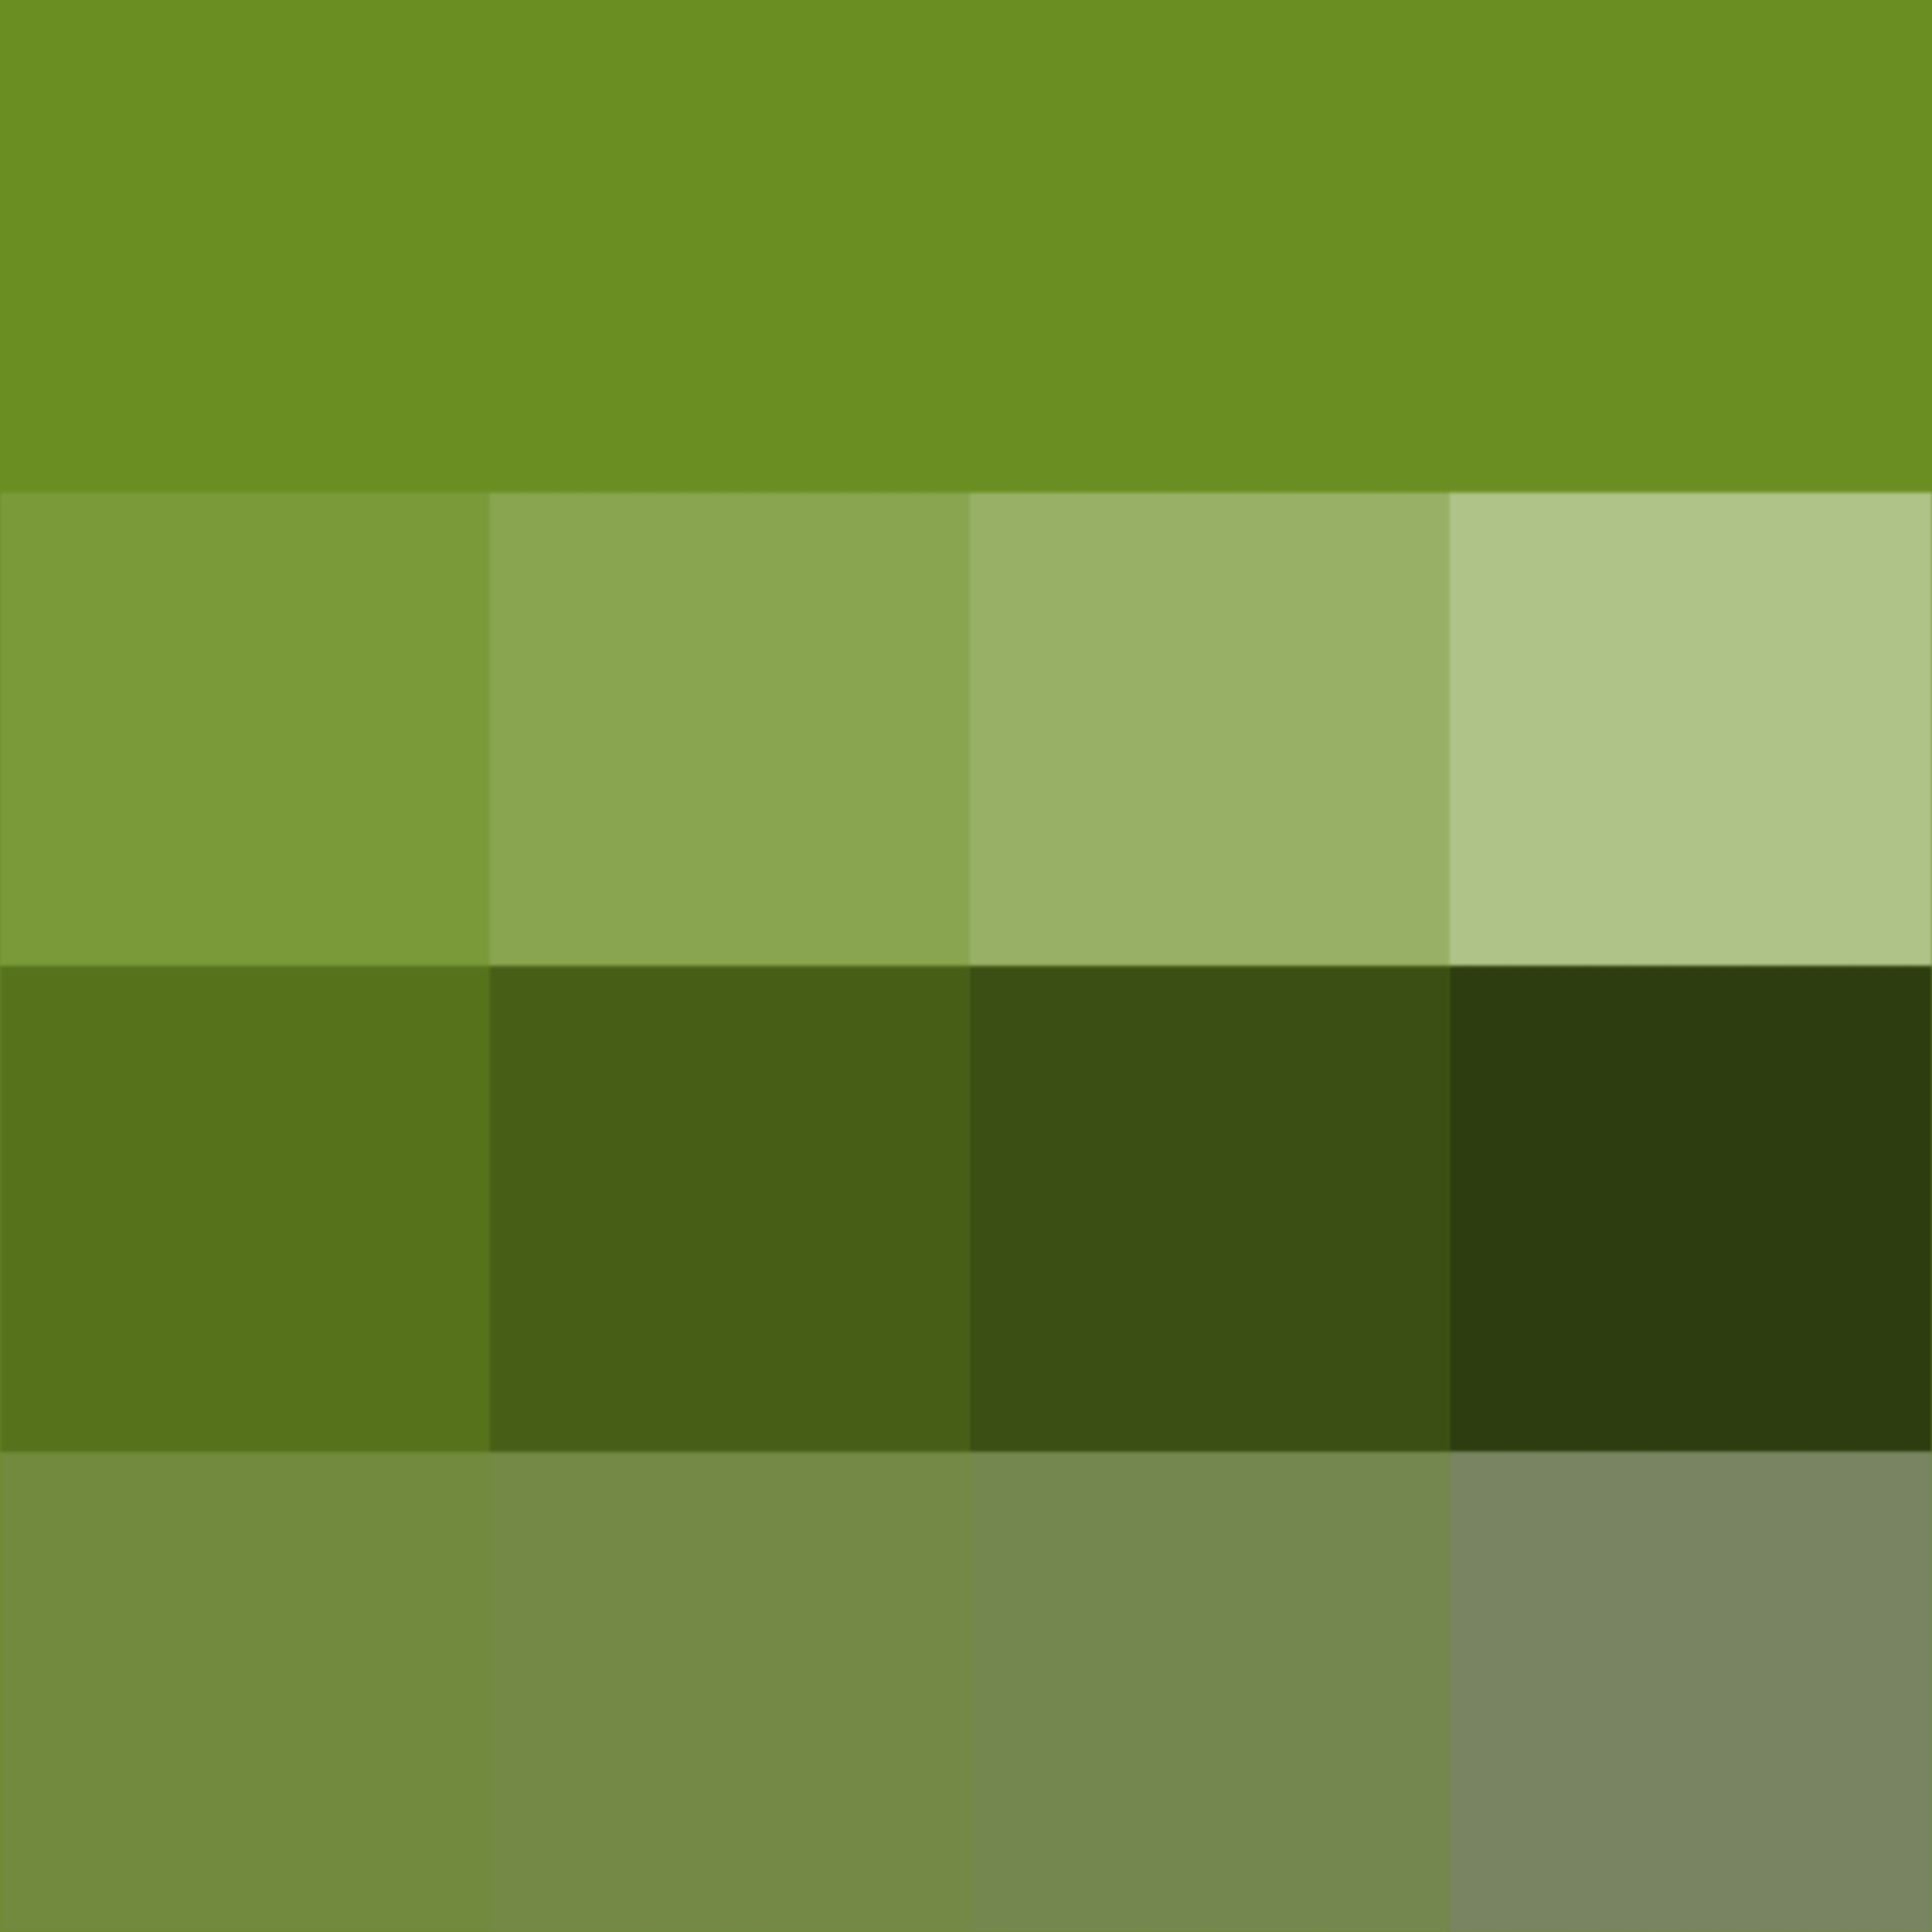 Olive Drab ( Hue ) ( pure color ) with Tints (hue + white), Shades ...